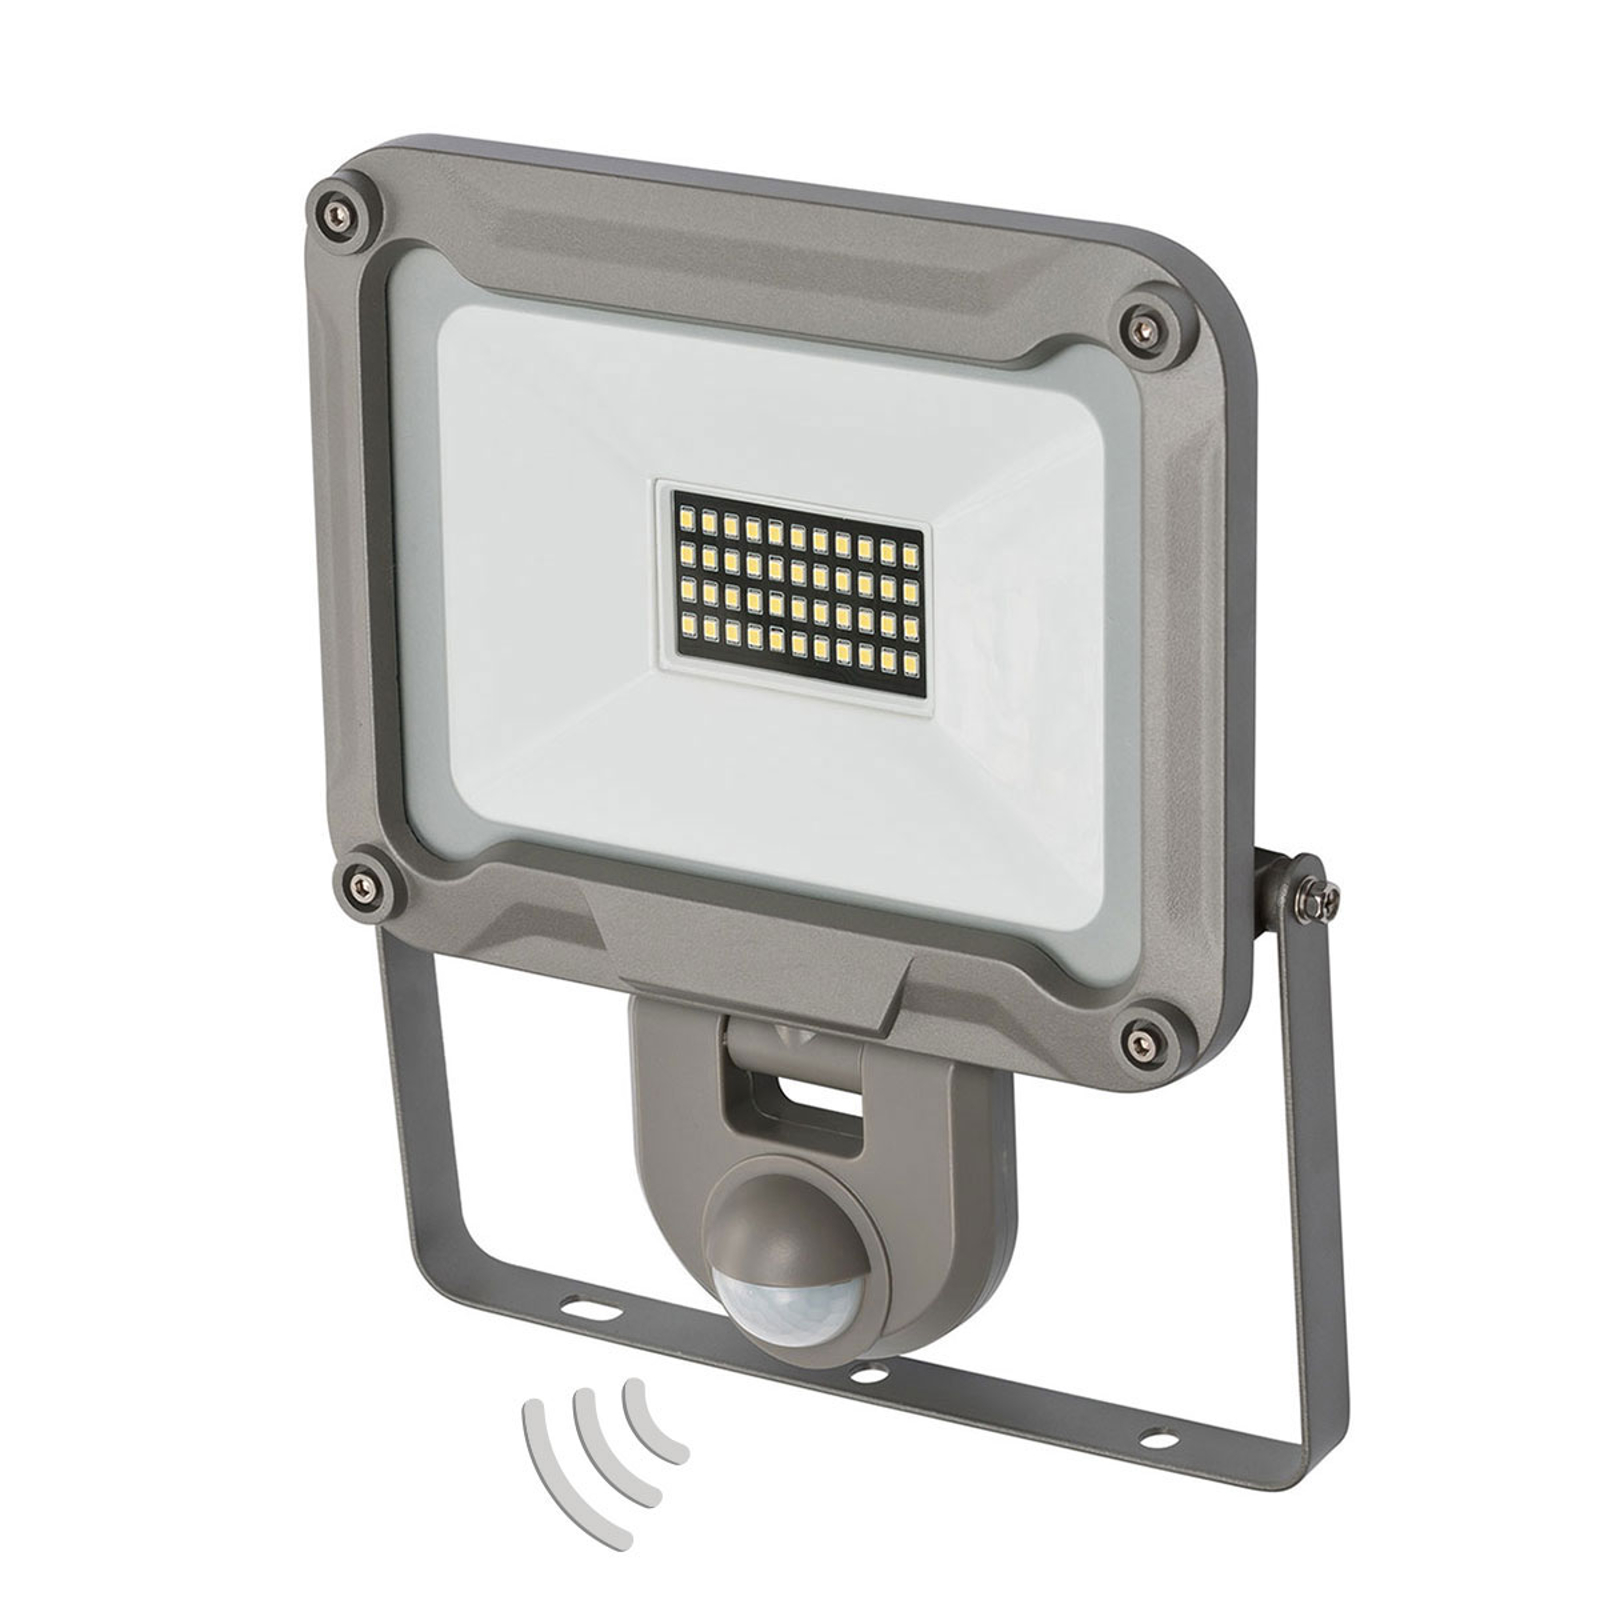 LED buitenspot Jaro met sensor IP44 30W